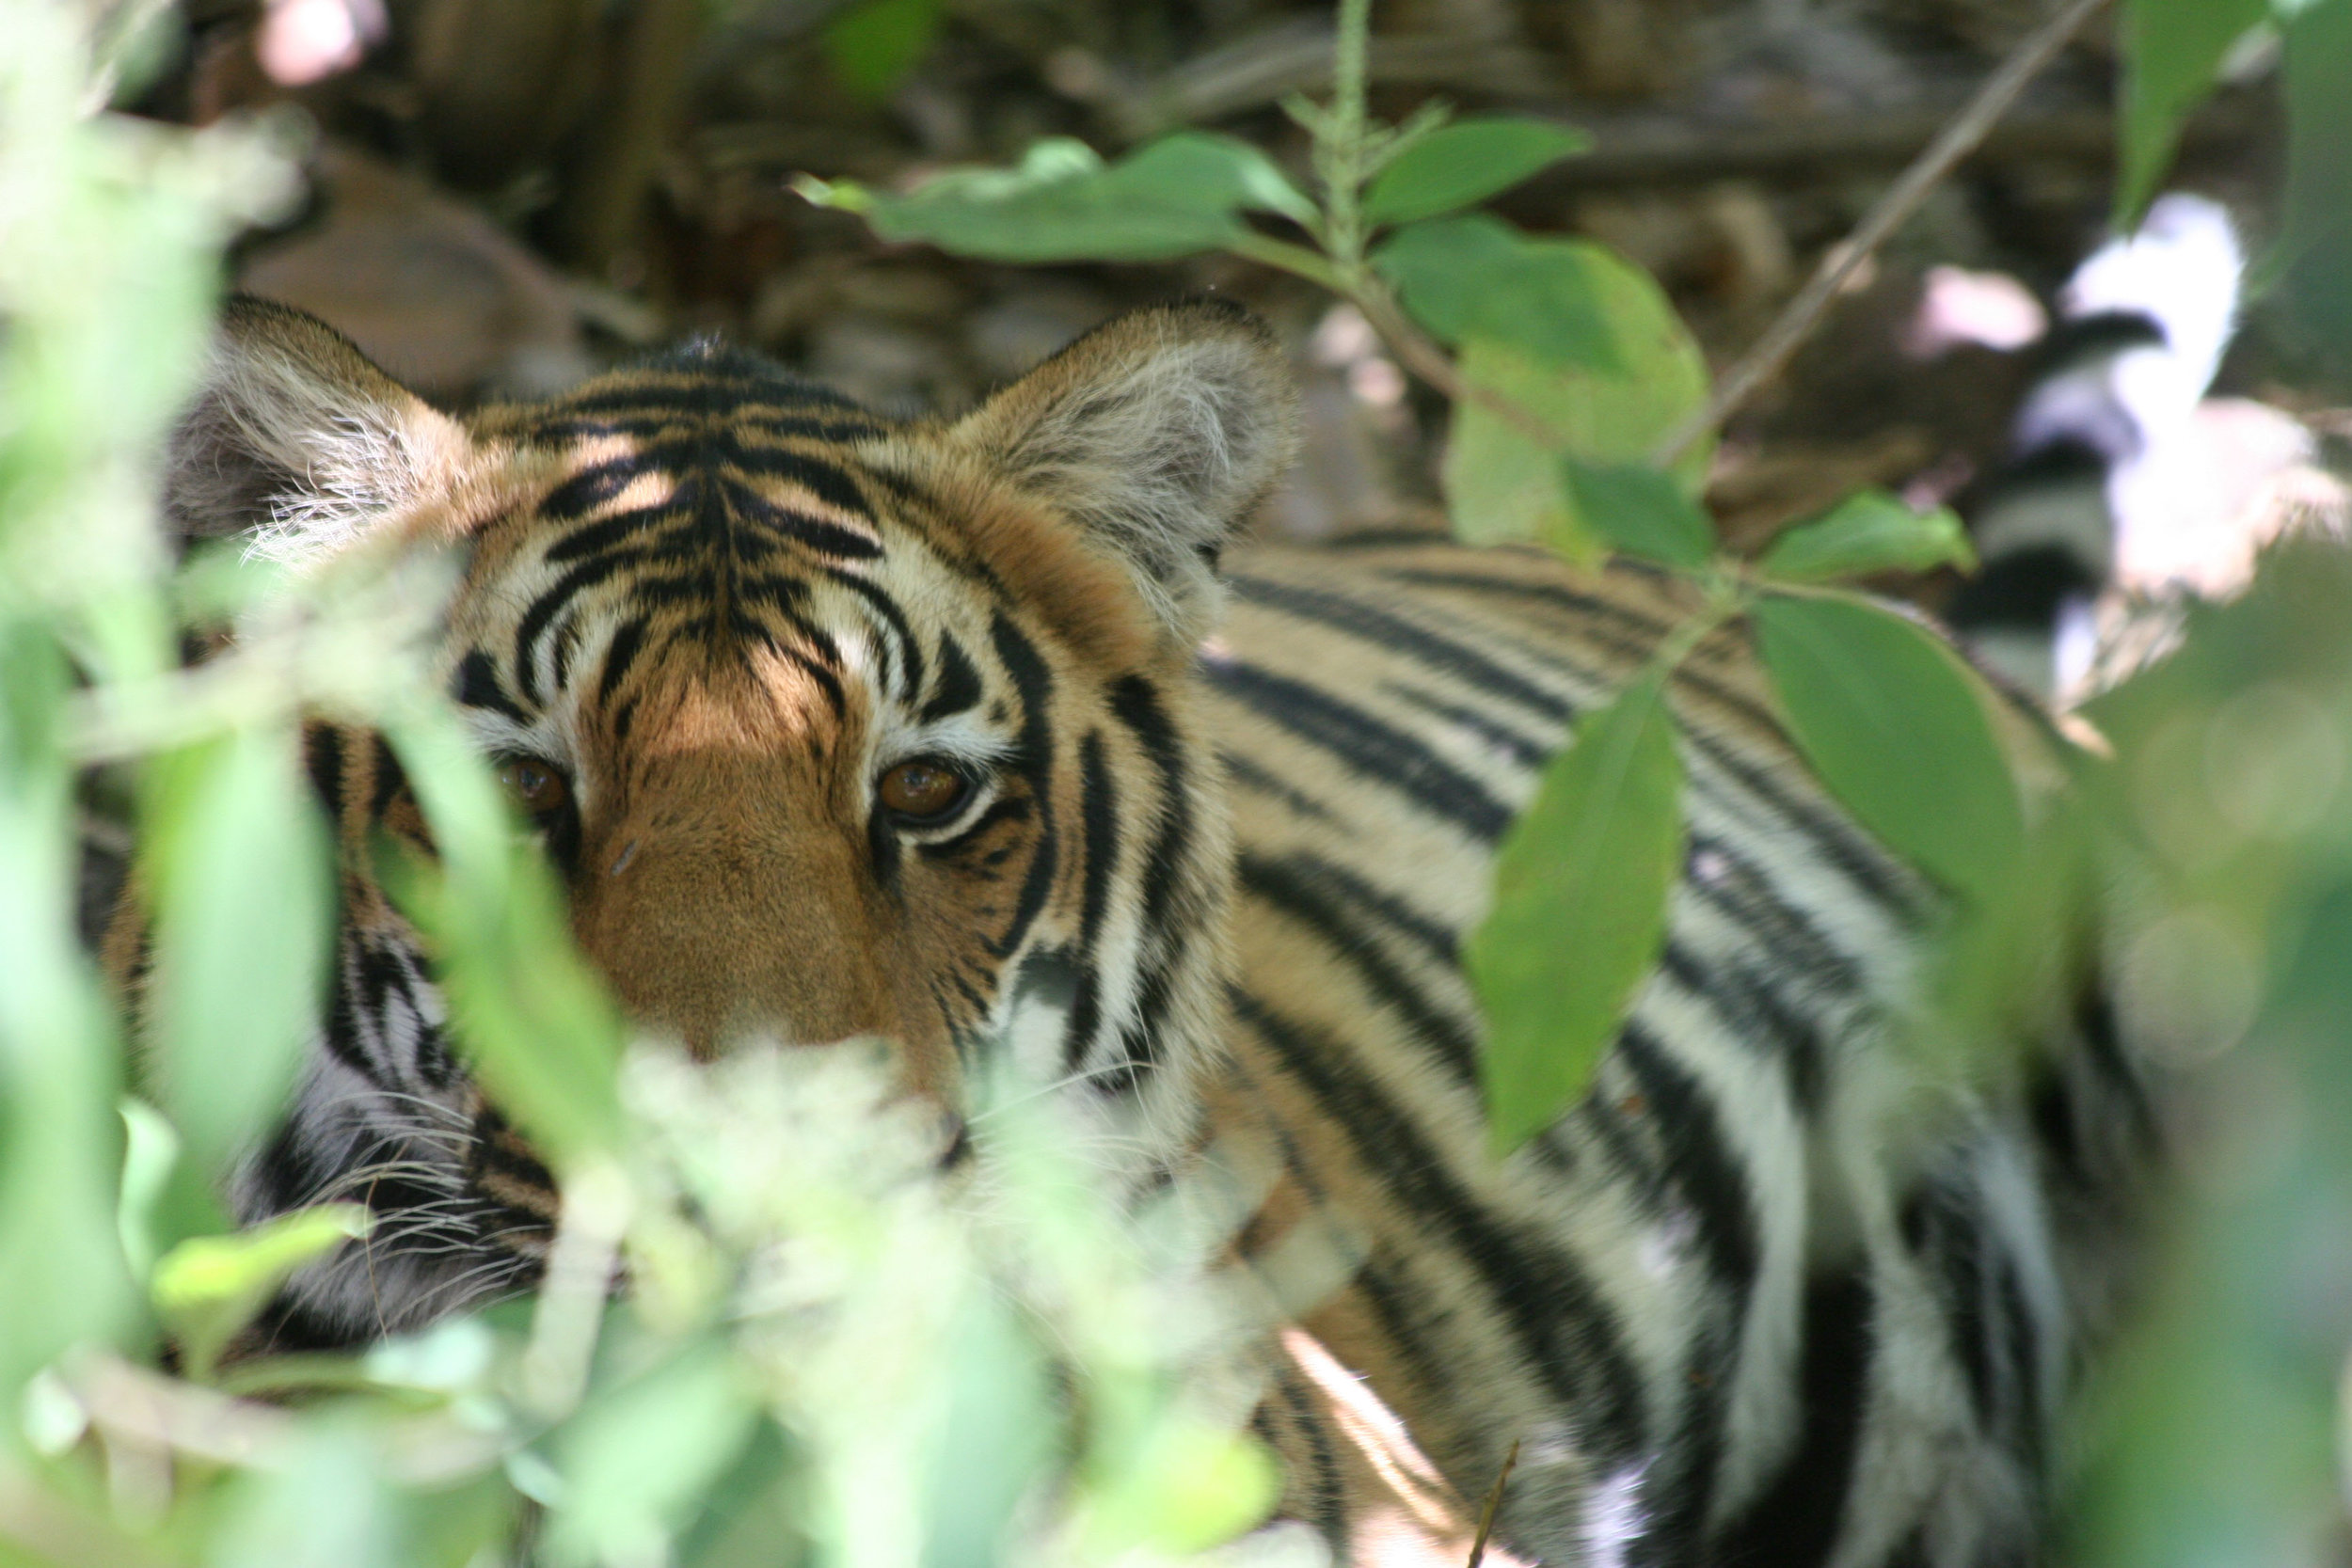 A subadult tiger at Kanha National Park. The photo was taken from the back of an elephant during Yocom's research trip to India. (Photo by Katy Yocom)